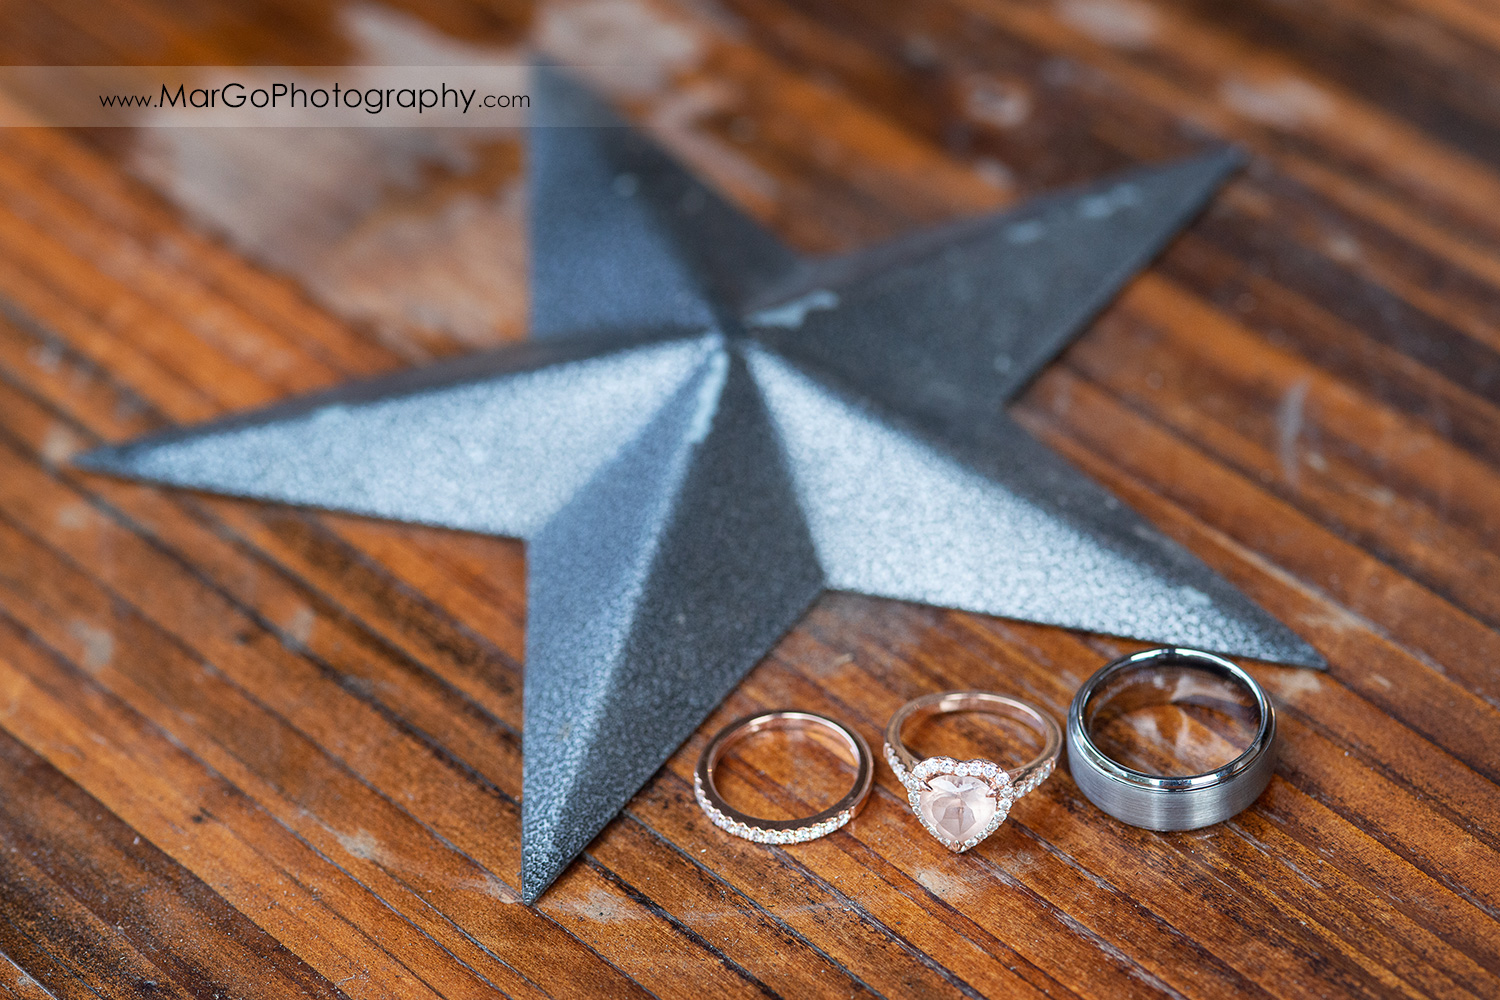 wedding rings with iron star at Long Branch Saloon & Farms in Half Moon Bay